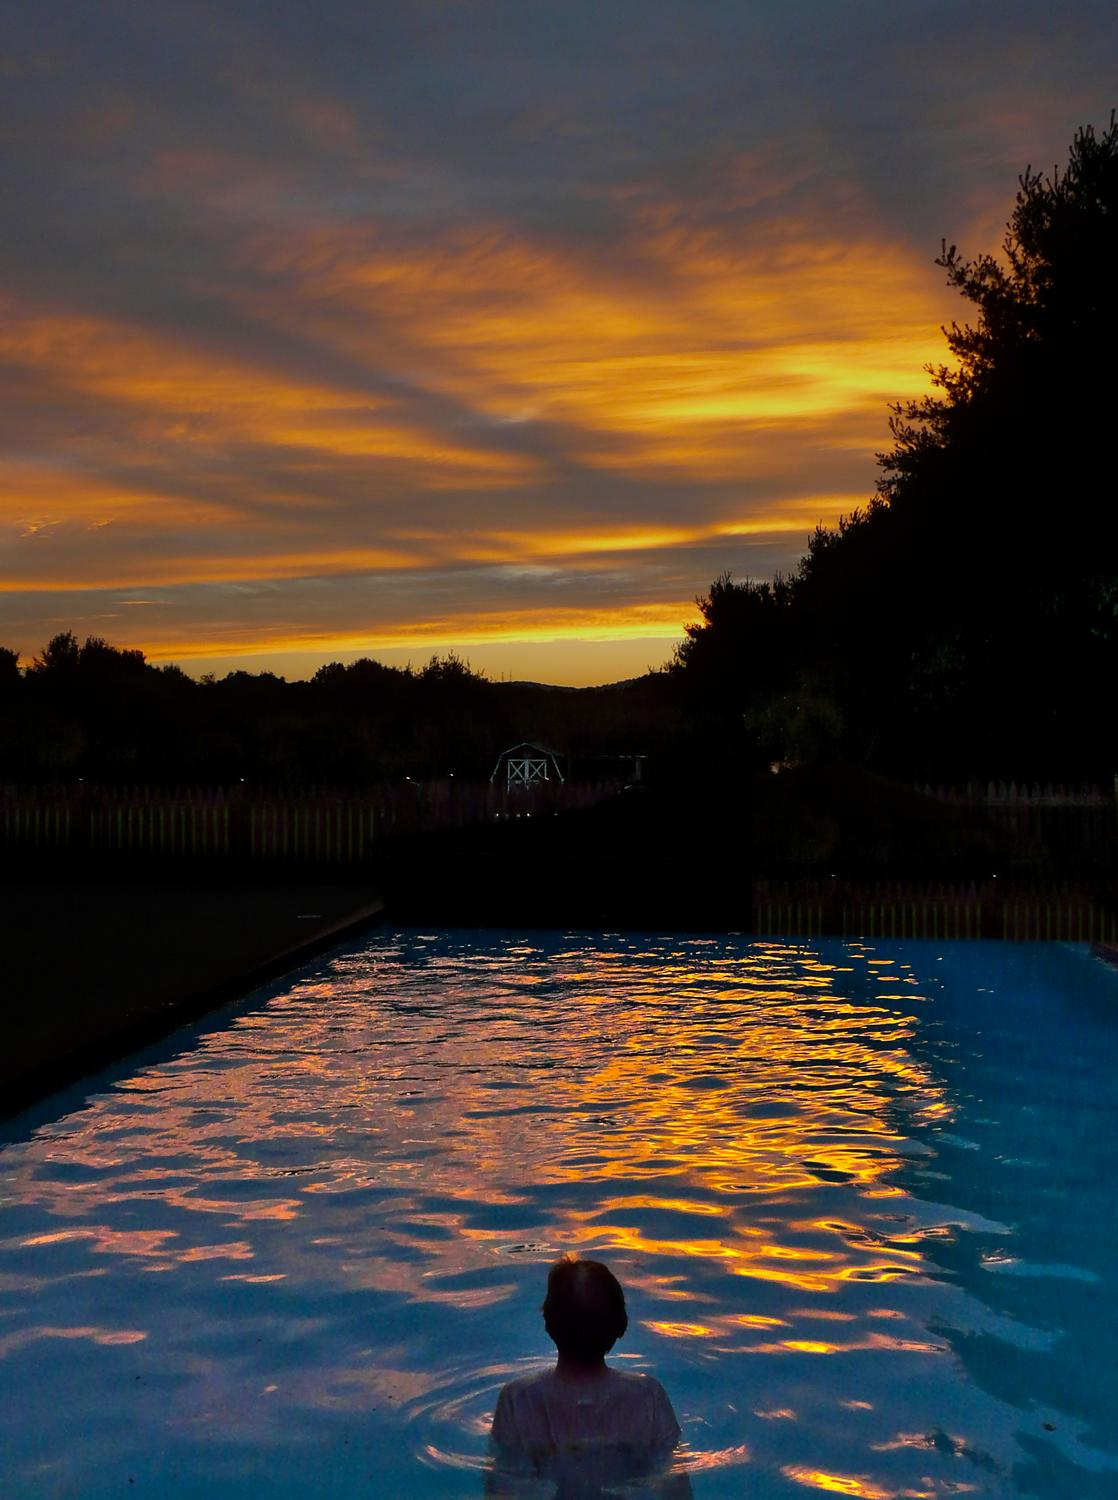 The artist's muse - the Hobbitt - in the pool at sunset #3 - The artist's muse at sunset -- DMC-FZ18 -  Panasonic DMC-FZ18 - Tony Karp, design, art, photography, techno-impressionist, techno-impressionism, aerial photography , drone , drones , dji , mavic pro , video , 3D printing - Books -